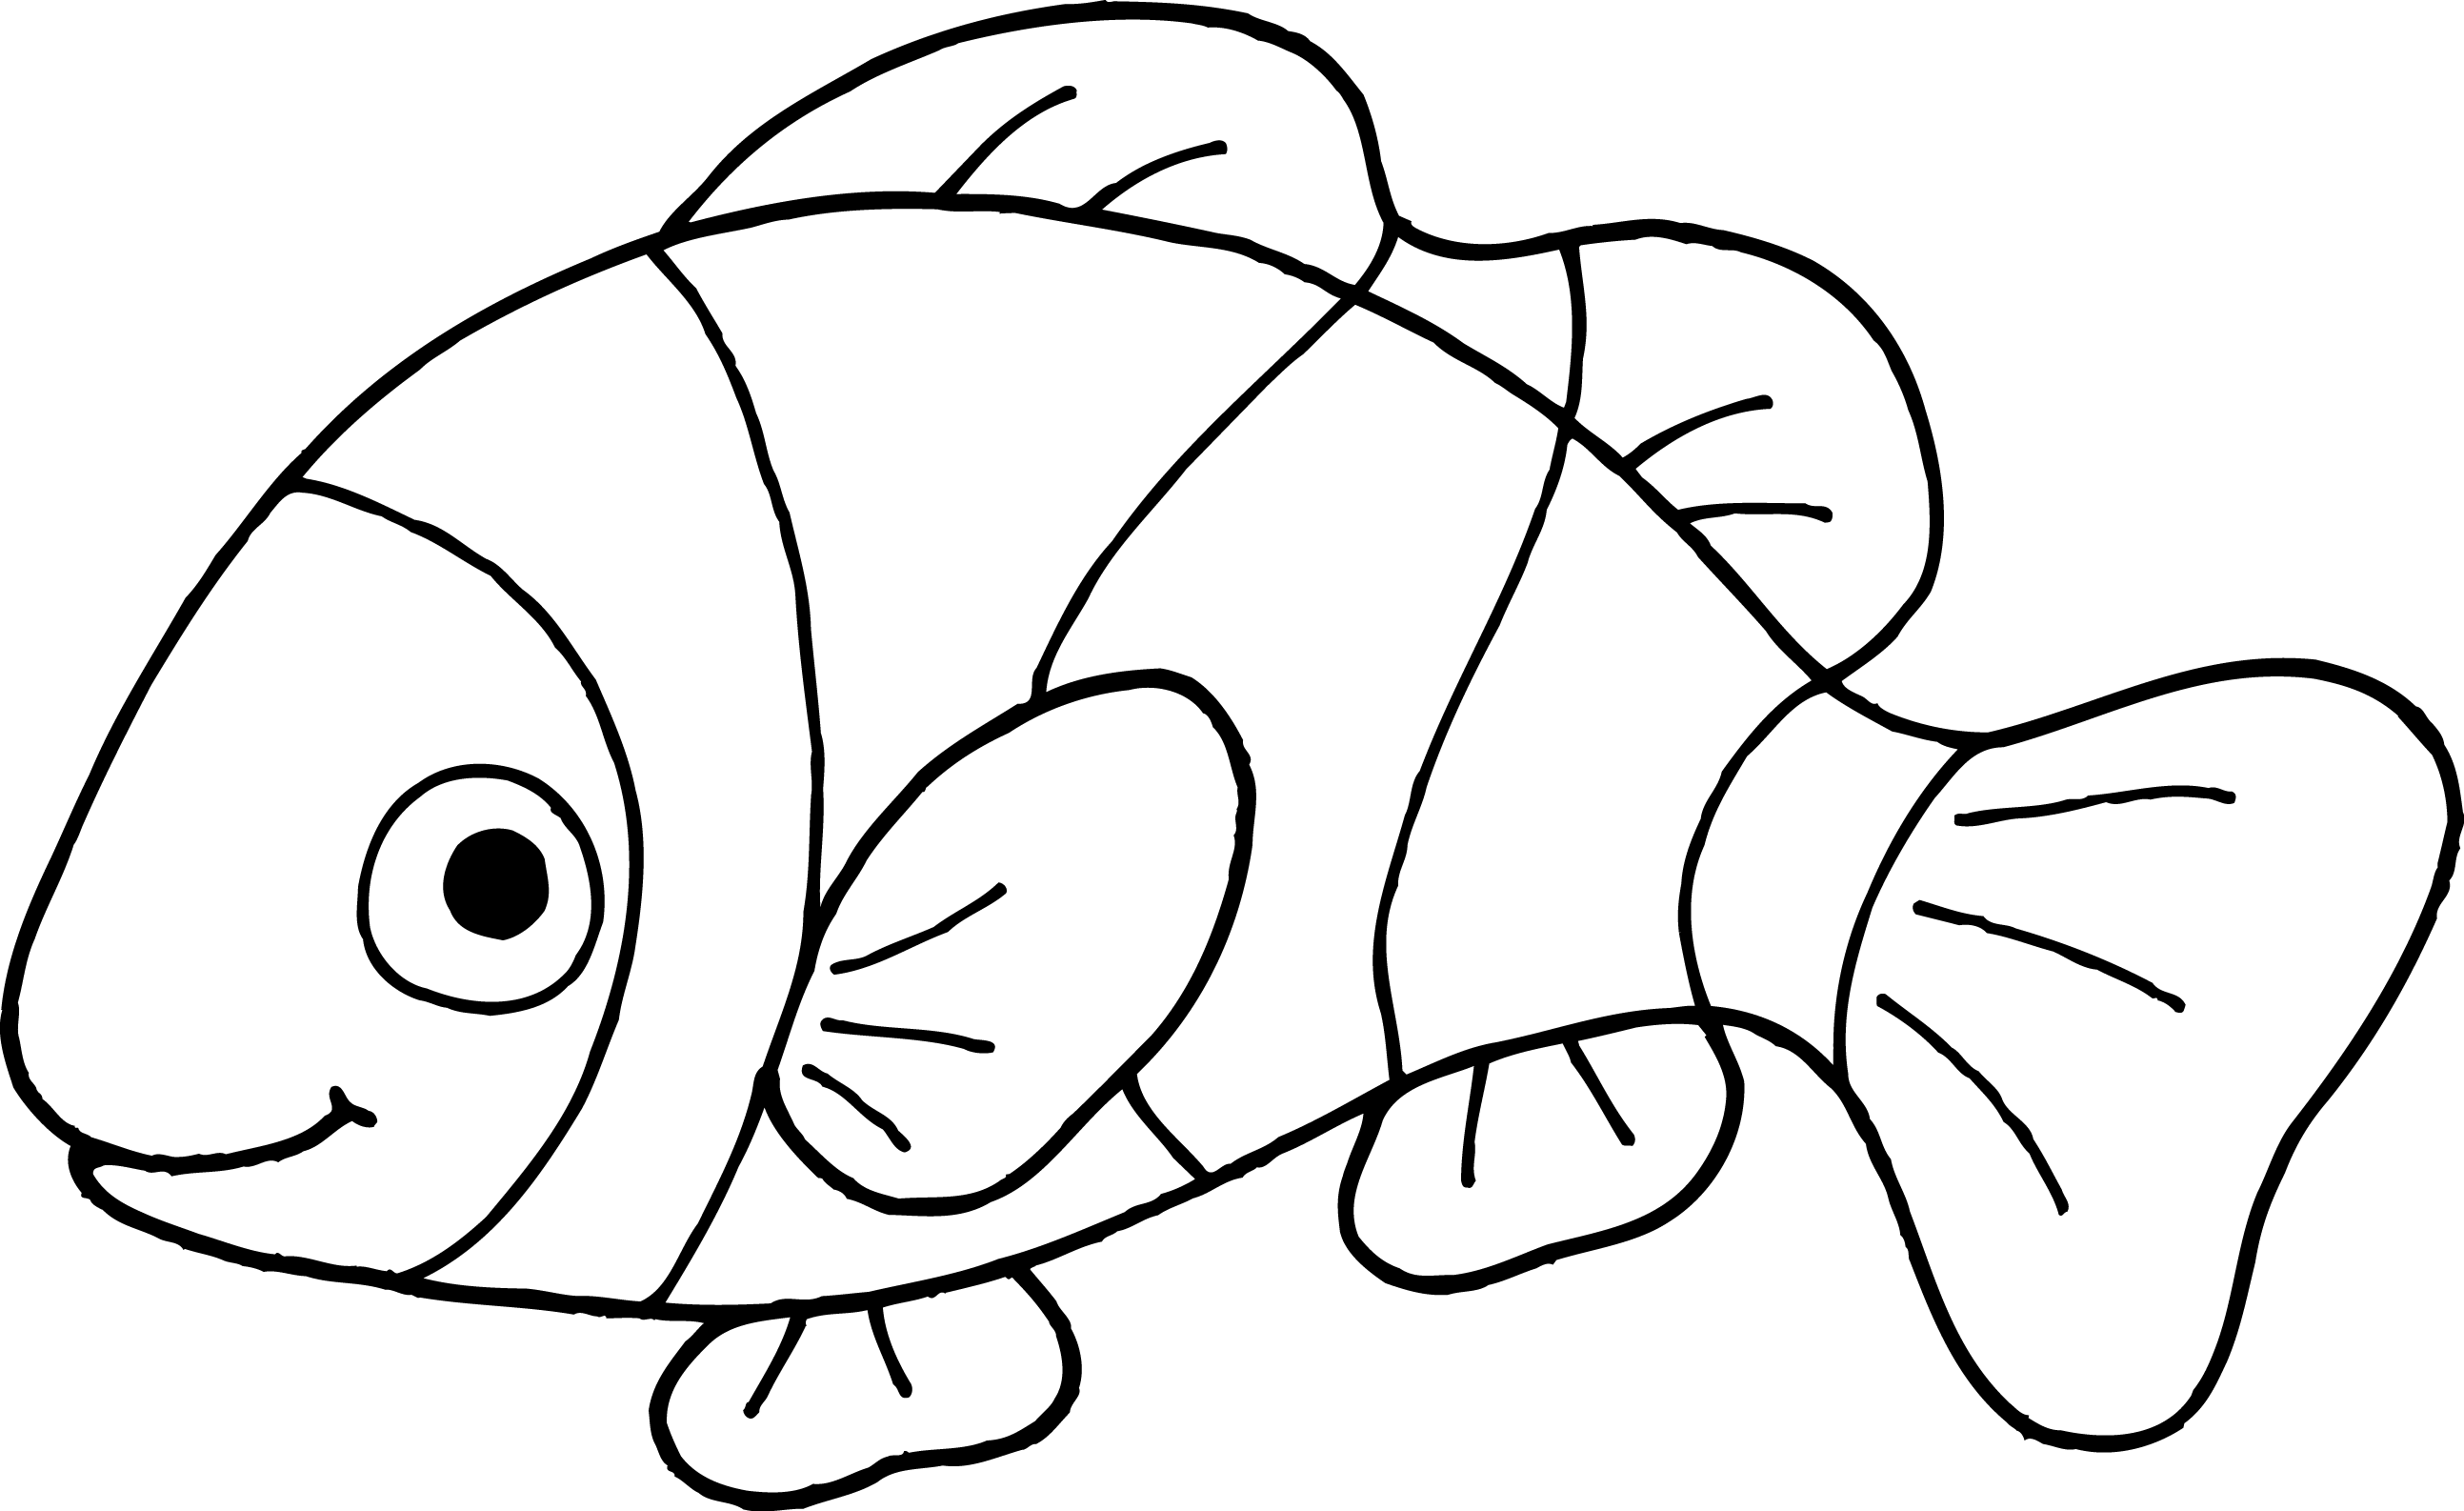 Free Clown Fish Clipart, Download Free Clip Art, Free Clip